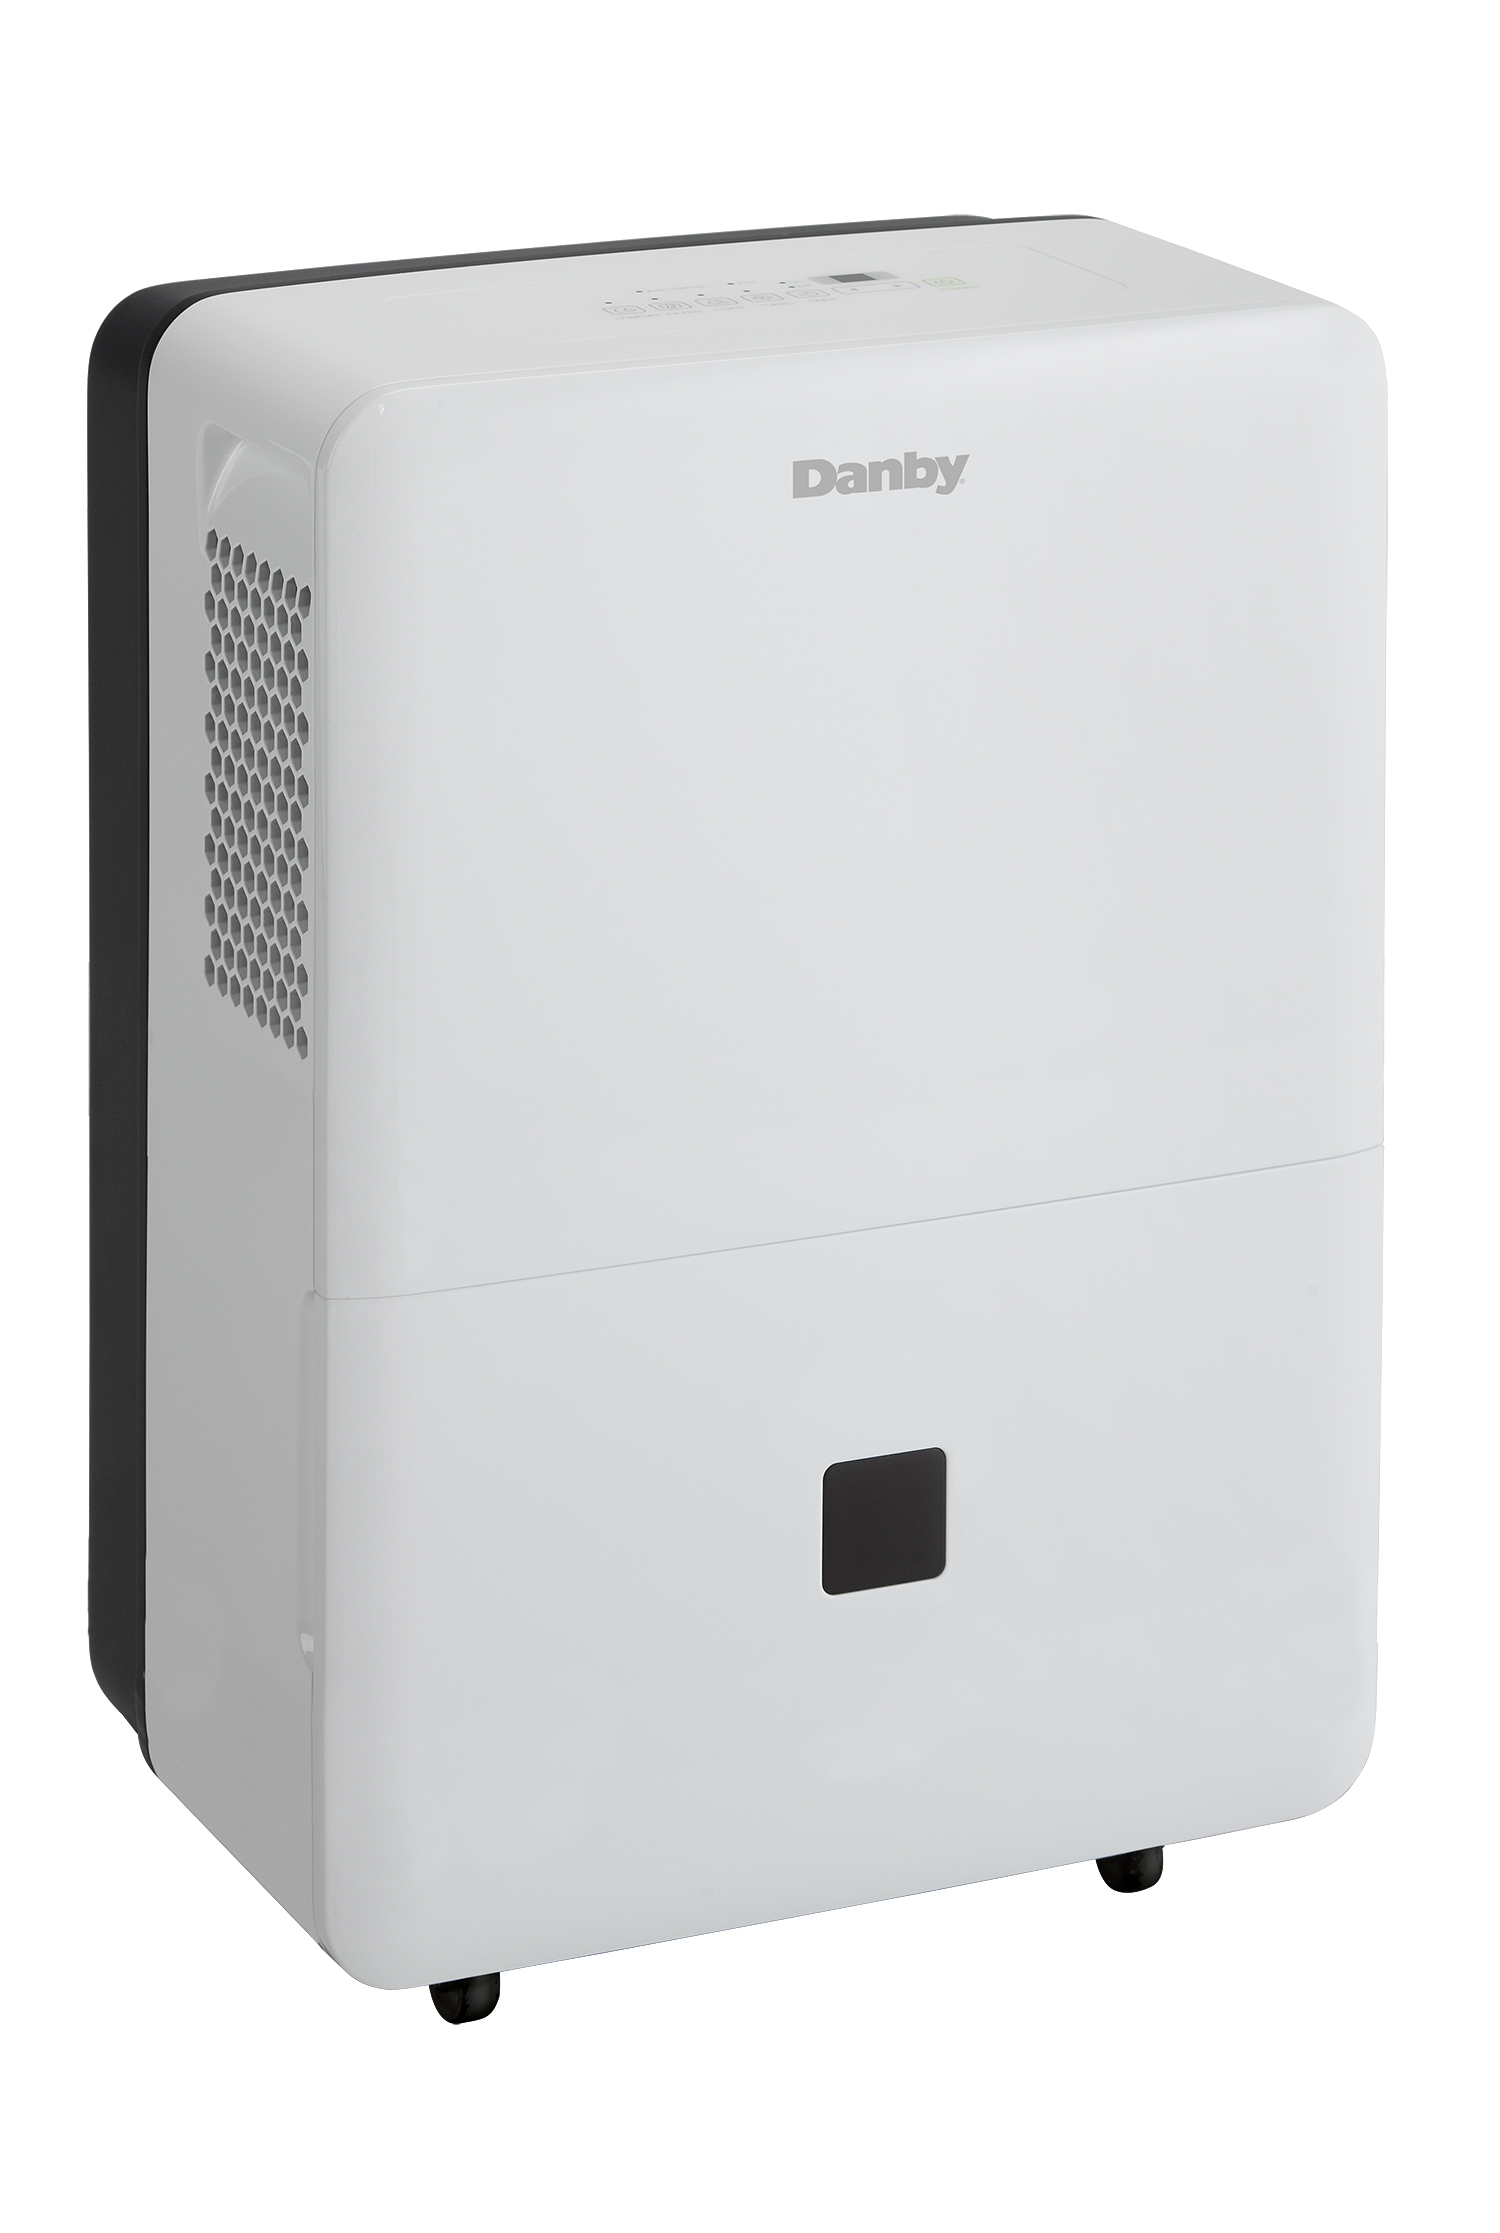 dehumidifiers danby appliance parts rh danbyapplianceparts com